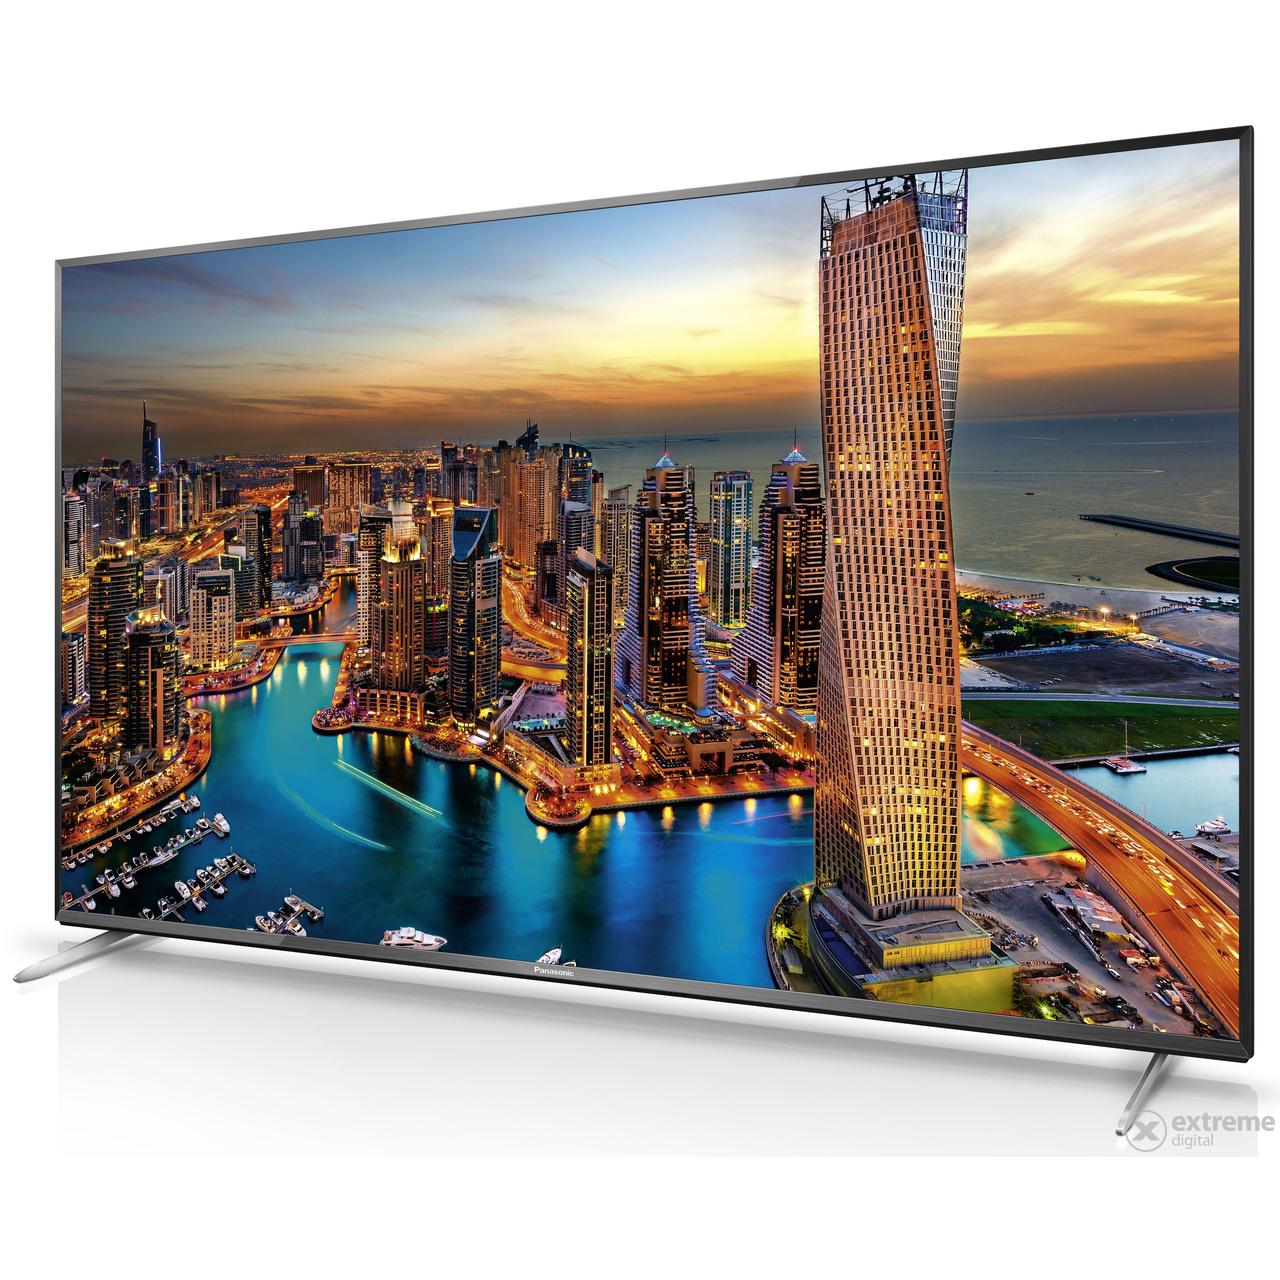 panasonic-tx-49cx740e-uhd-3d-smart-led-televizio_6f659ef2.jpg